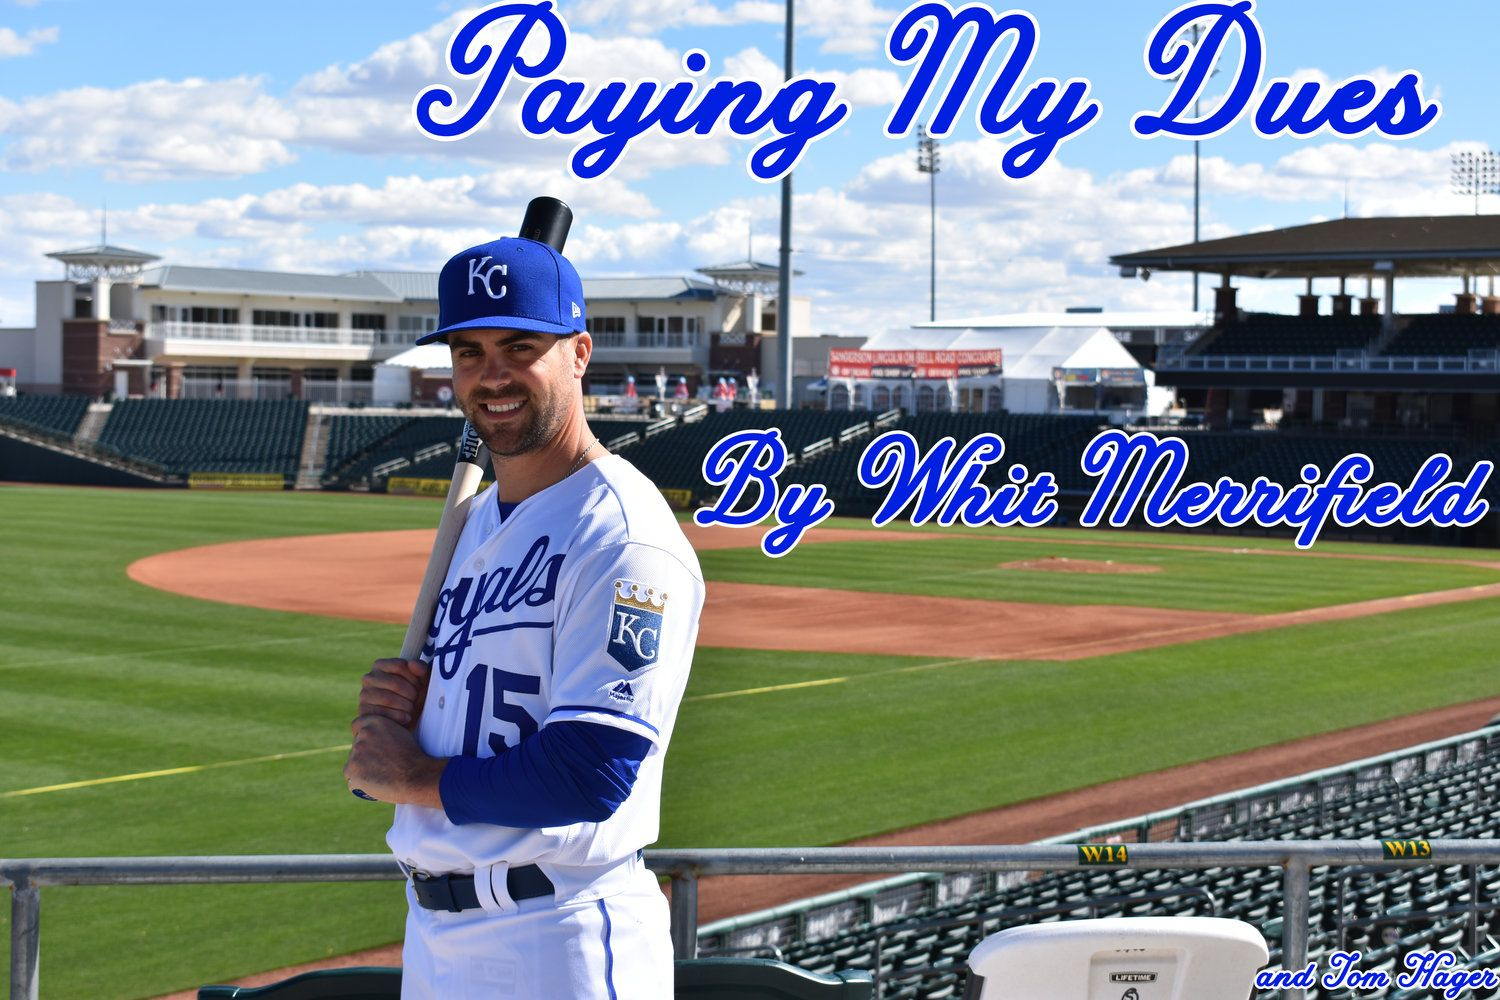 Great Perspective For All Of Our Lives Whit Merrifield Athletes For God Life Athlete Merrifield